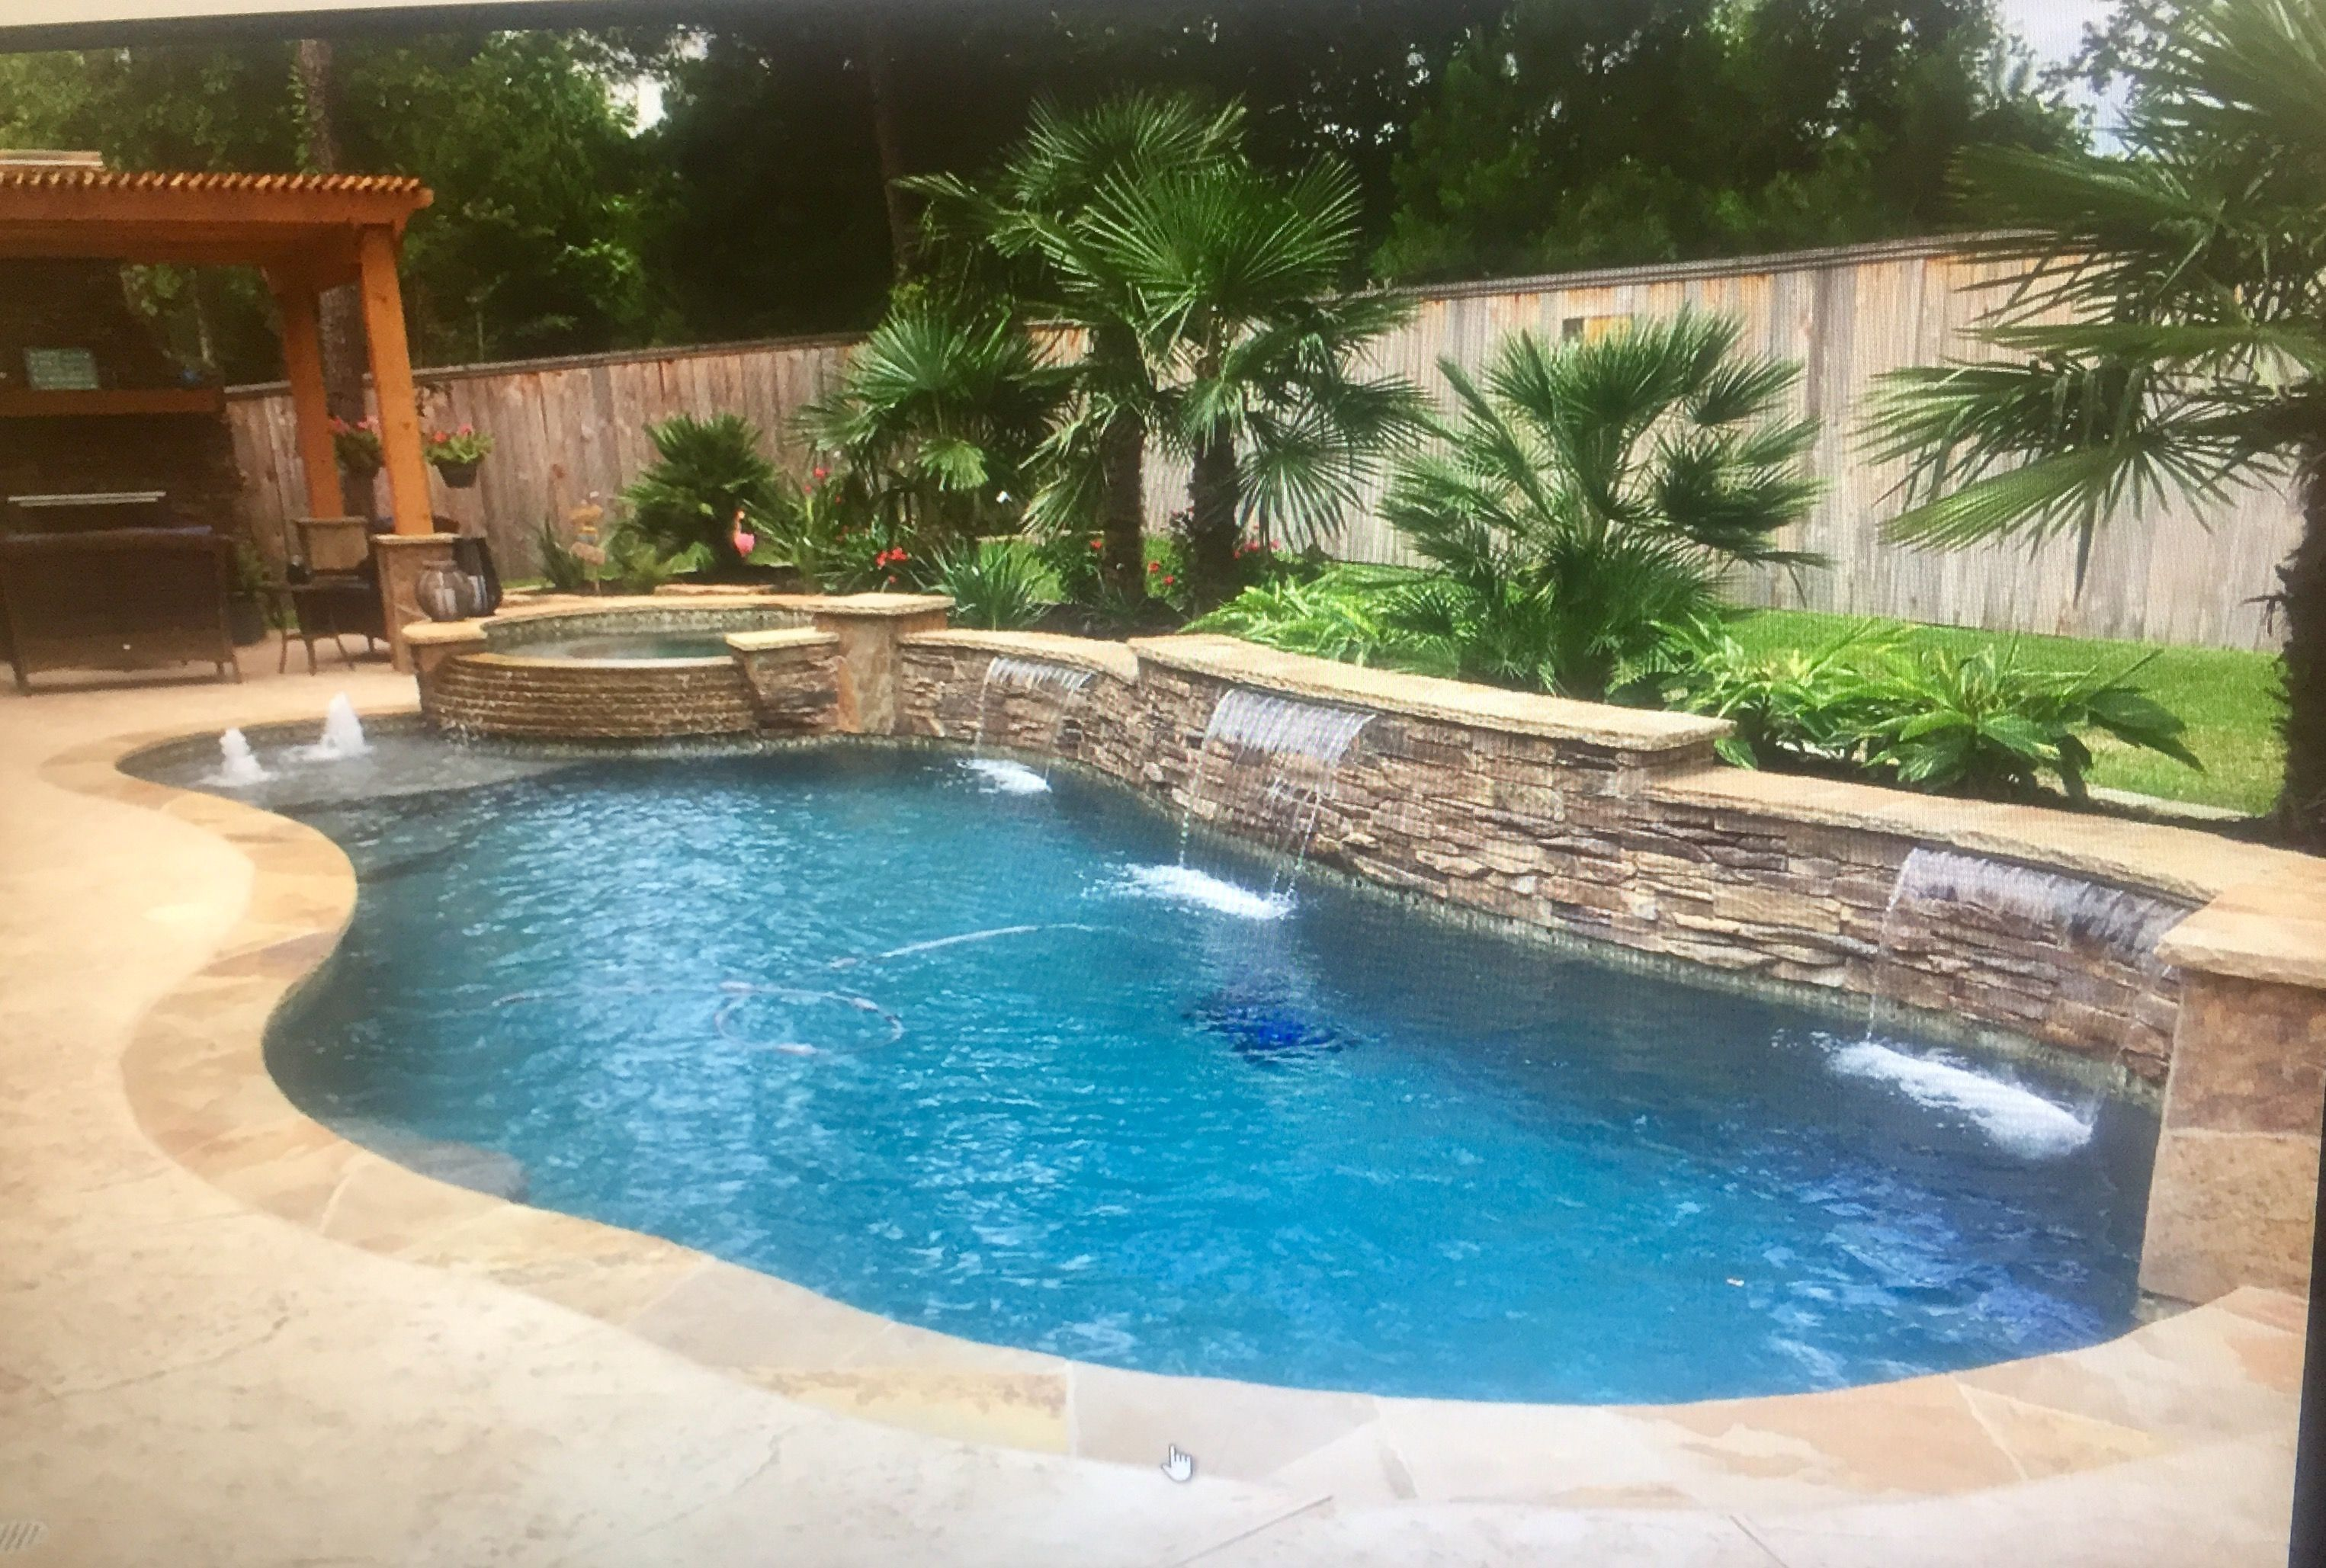 average cost of an inground swimming pool | Backyard in 2019 ...